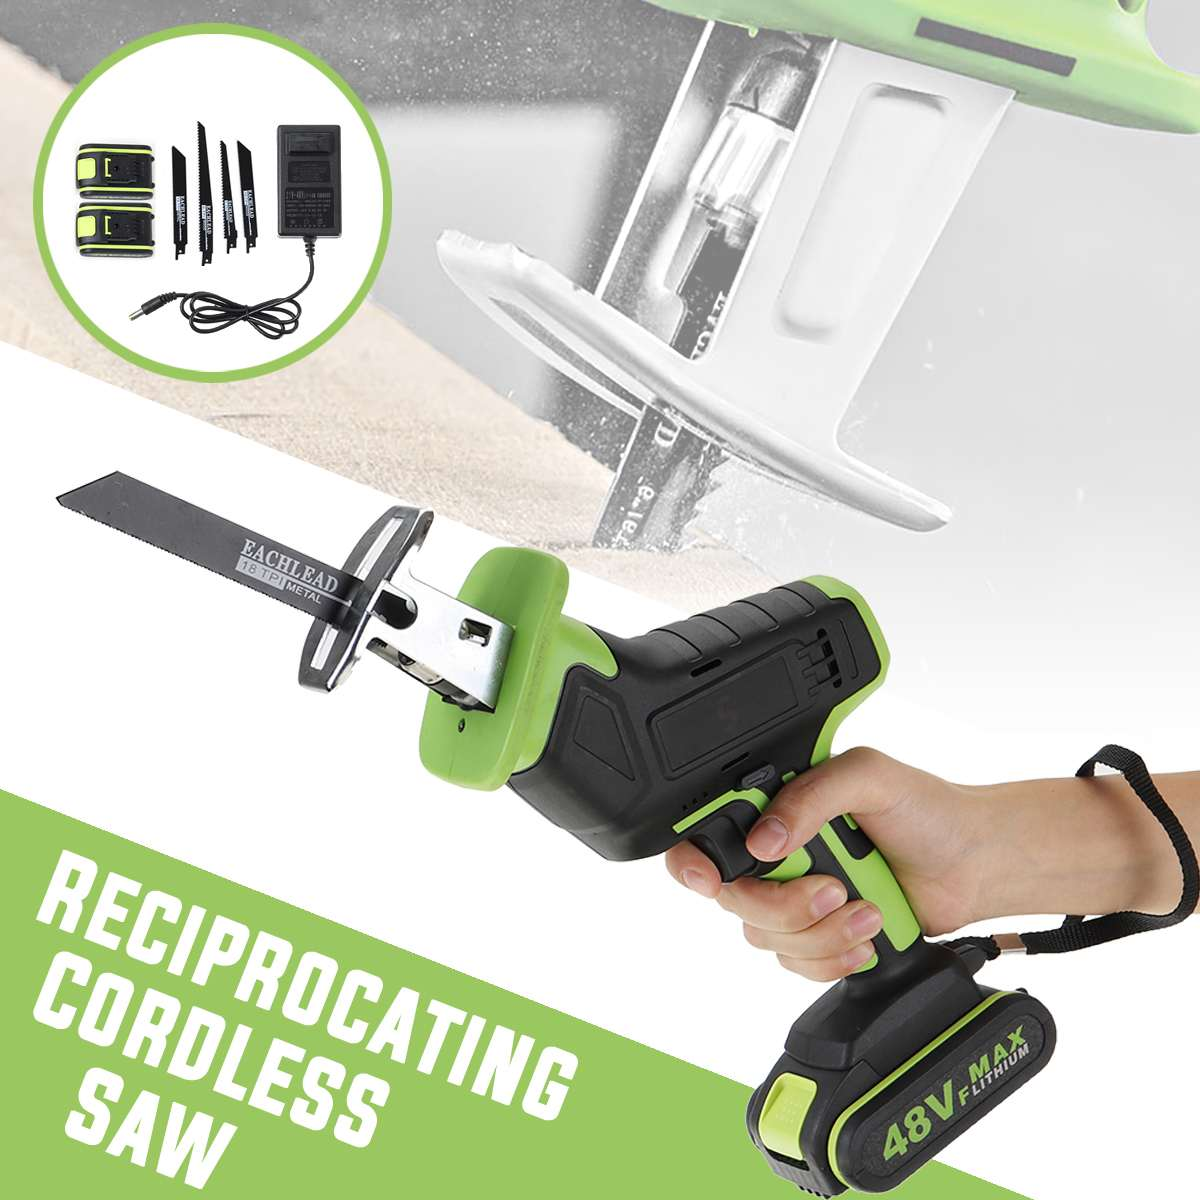 Doersupp 48V Cordless Reciprocating Saw +4 Saw Blades Metal Cutting Wood Tool Portable Woodworking Cutters With 1/2 Battery